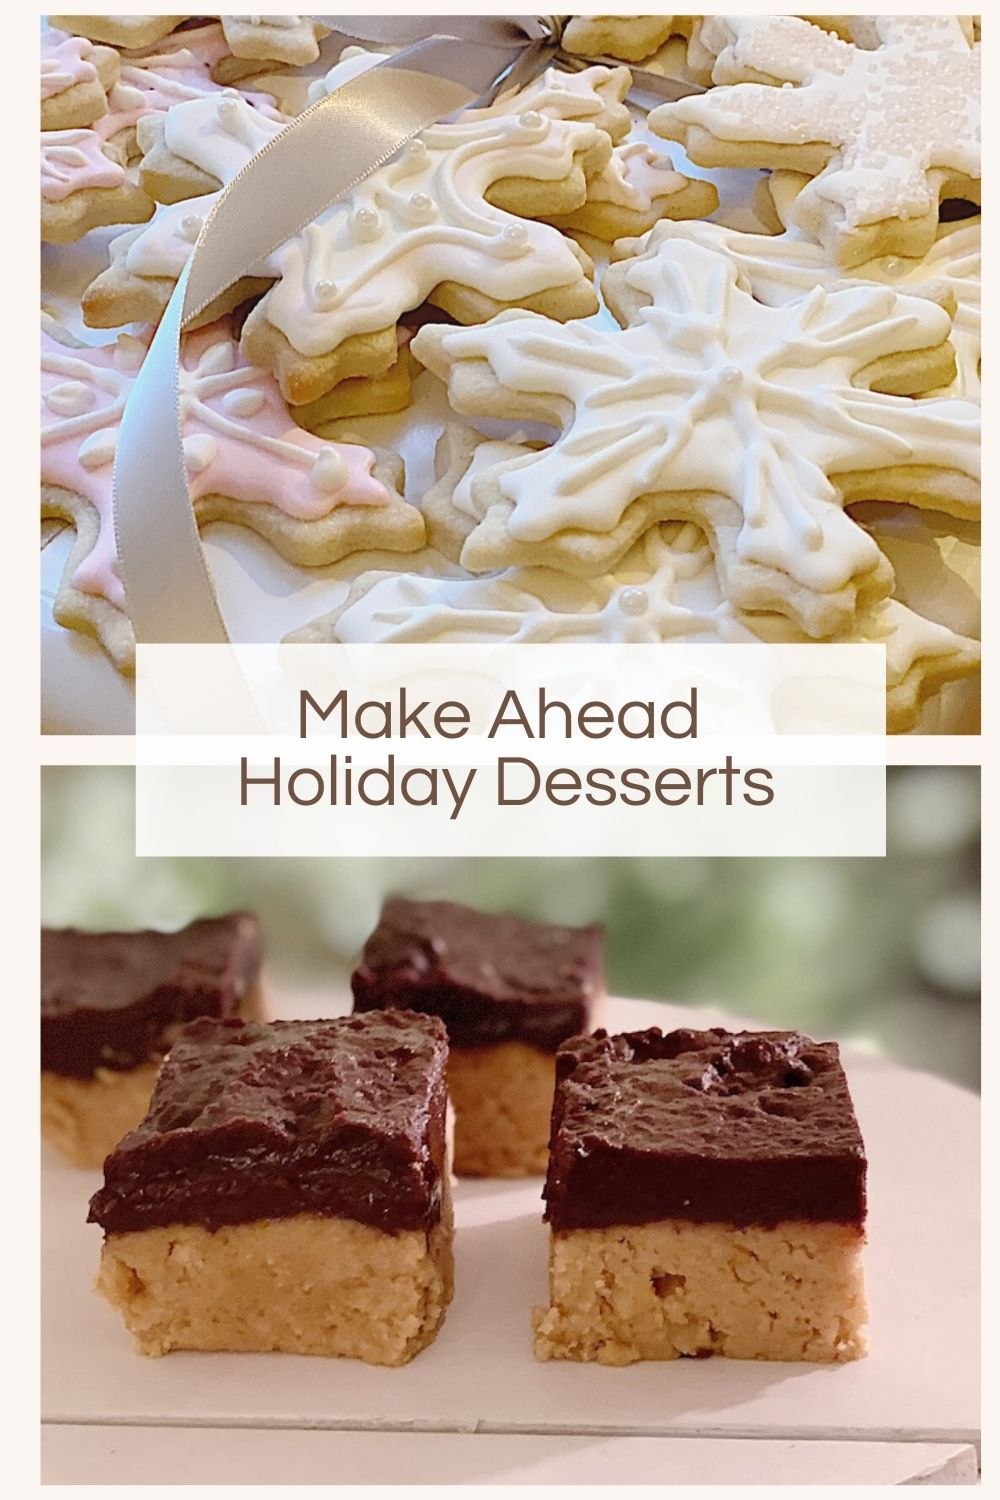 I love baking for the holidays and today I am sharing three of my favorite make-ahead holiday desserts. They are delicious.